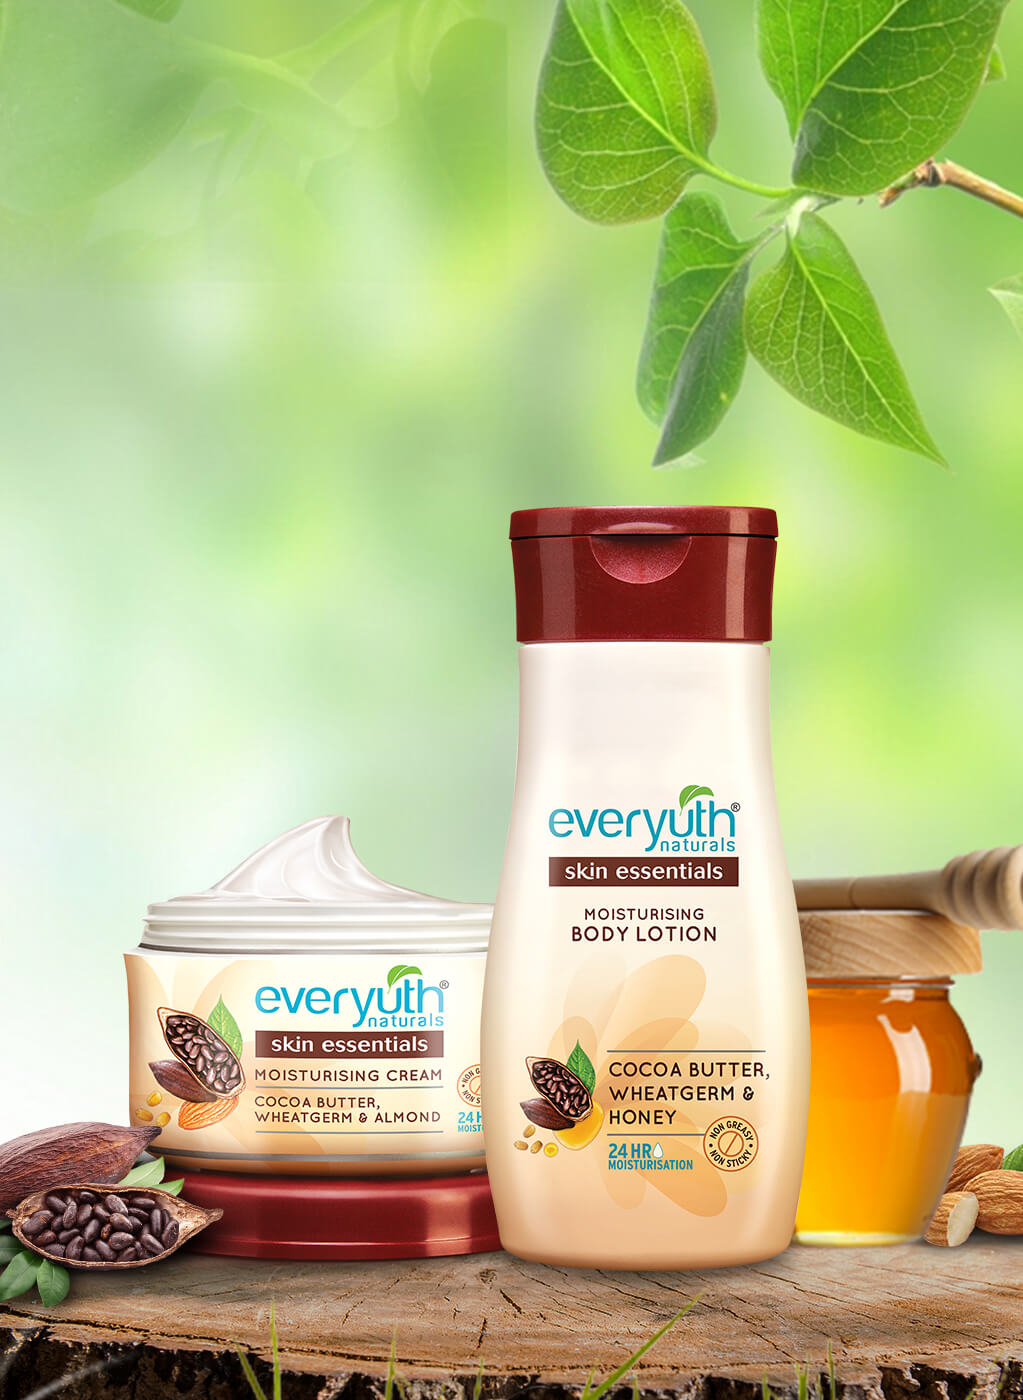 Moisturizing Cream & Body Lotion For Dry Skin from Everyuth Naturals